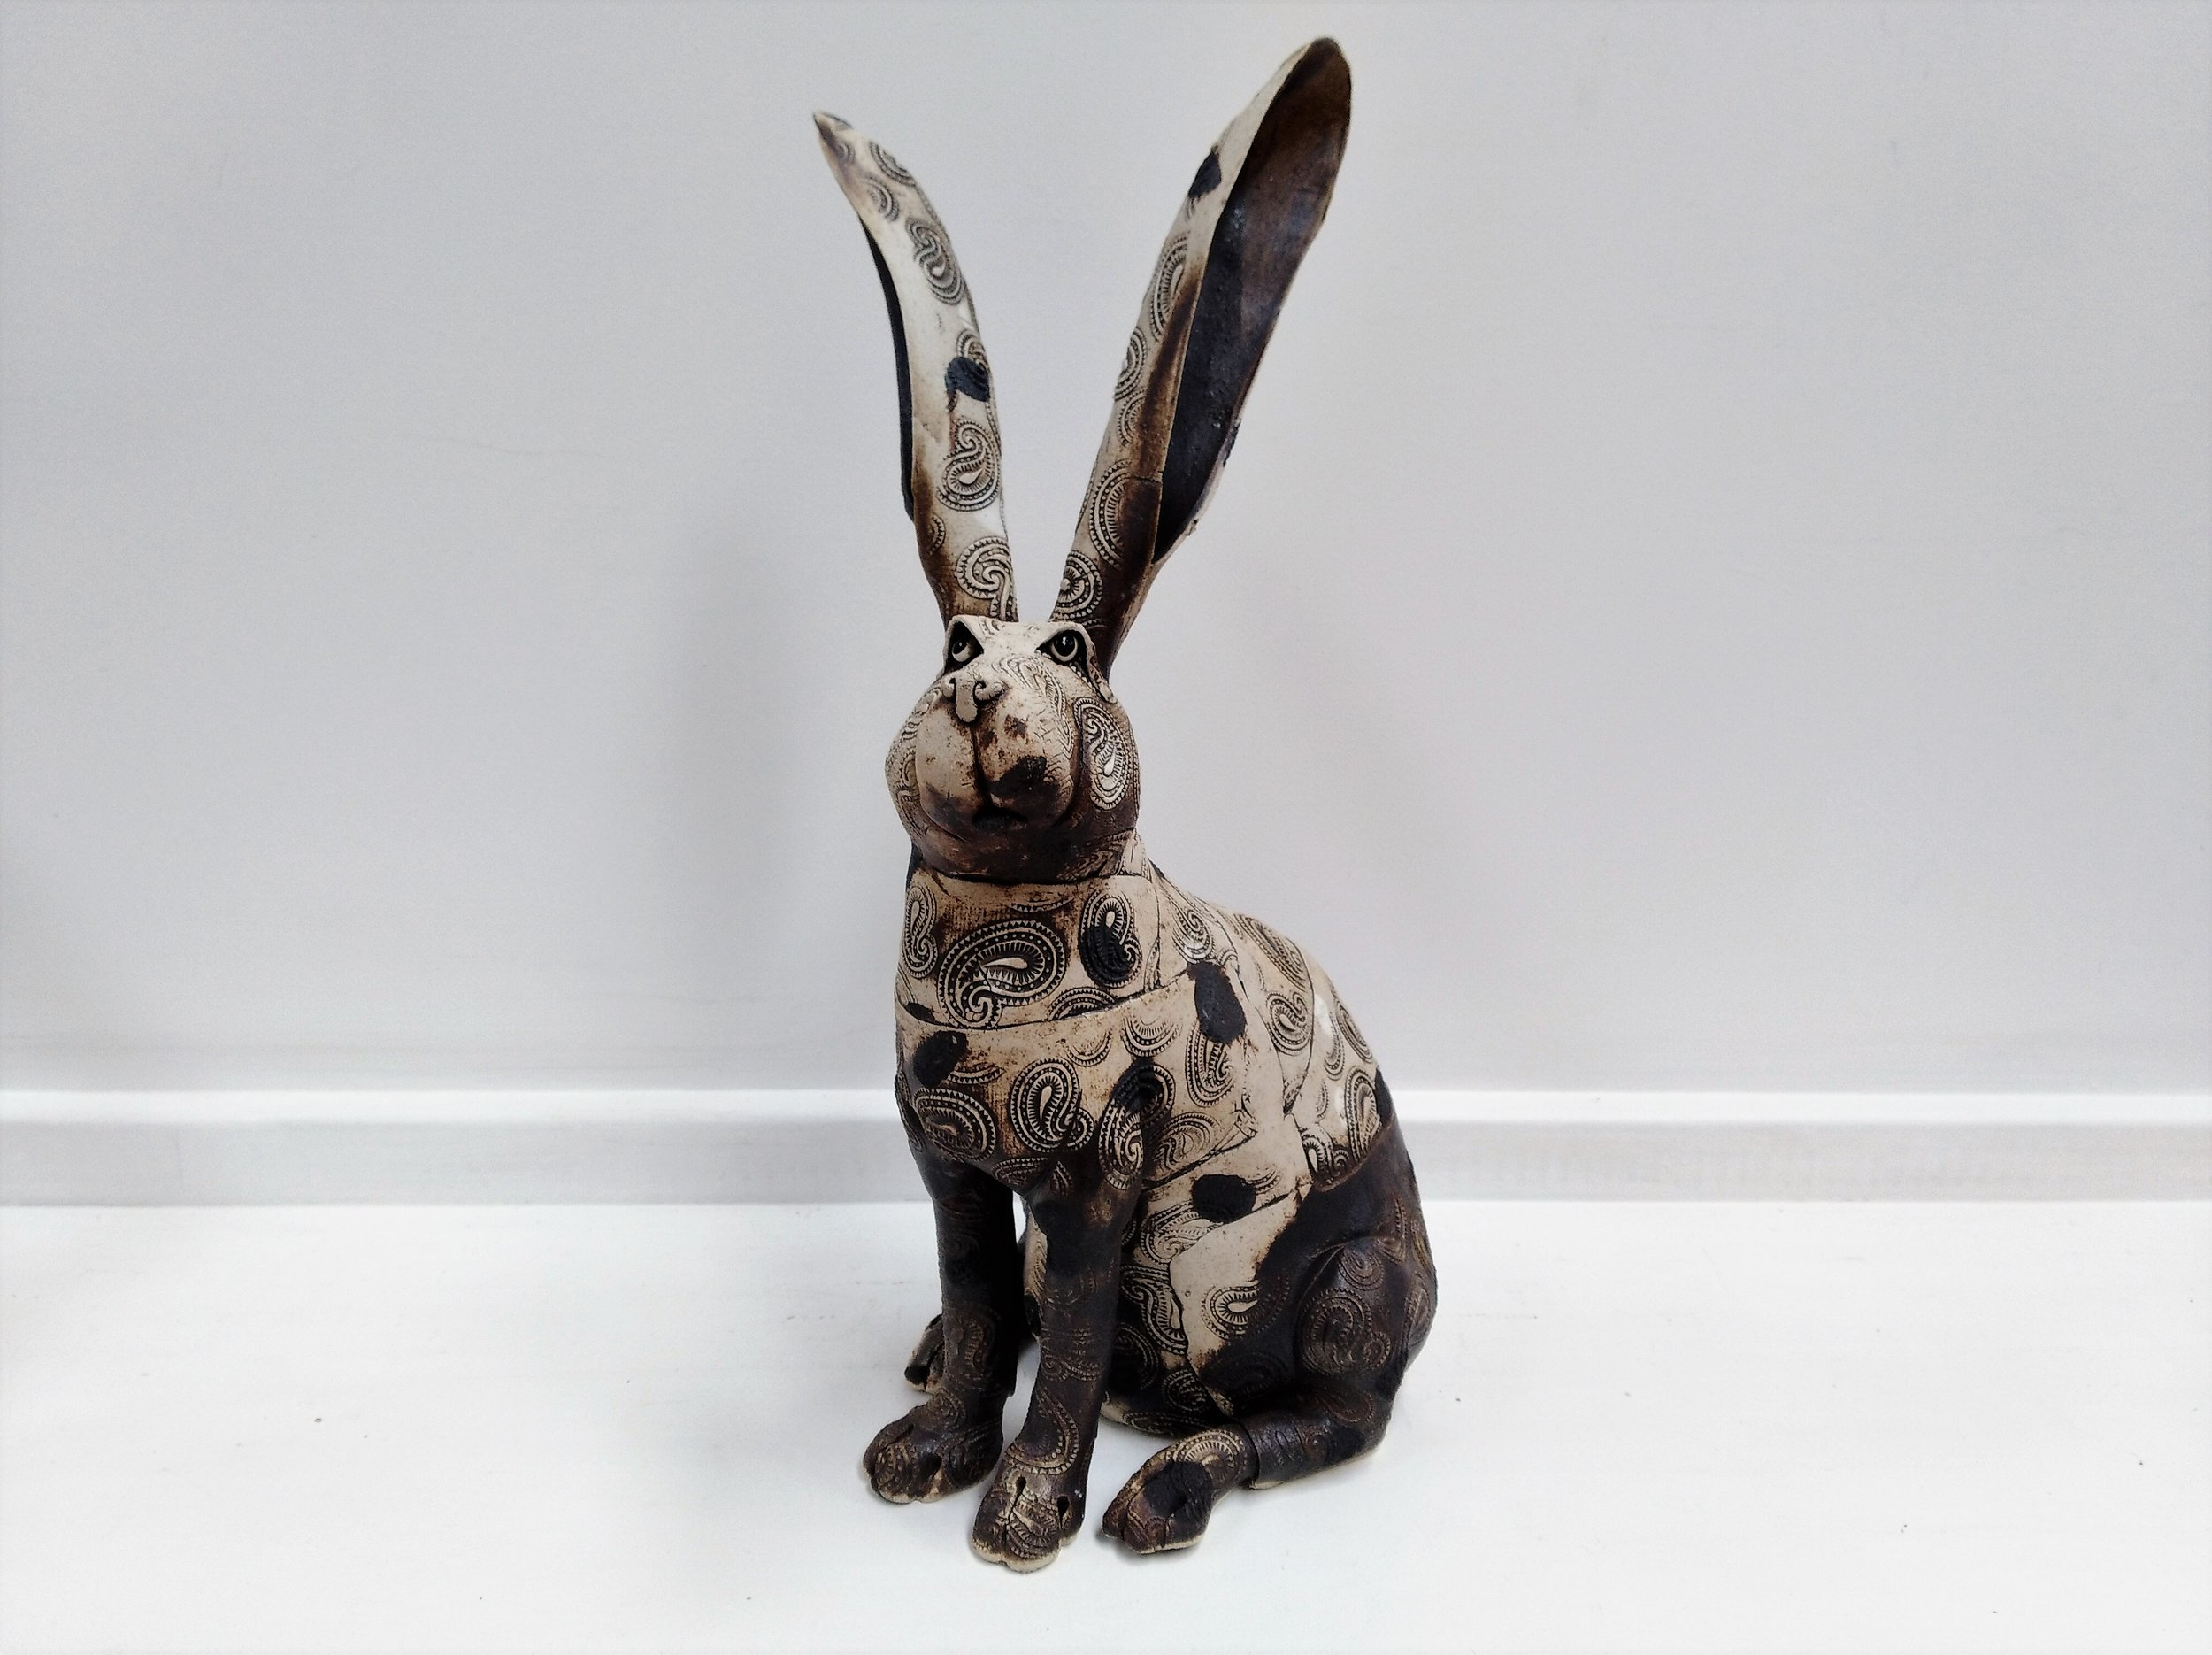 Chonky Hare  Fiona Tunnicliffe, hand-formed ceramic sculpture,  sold